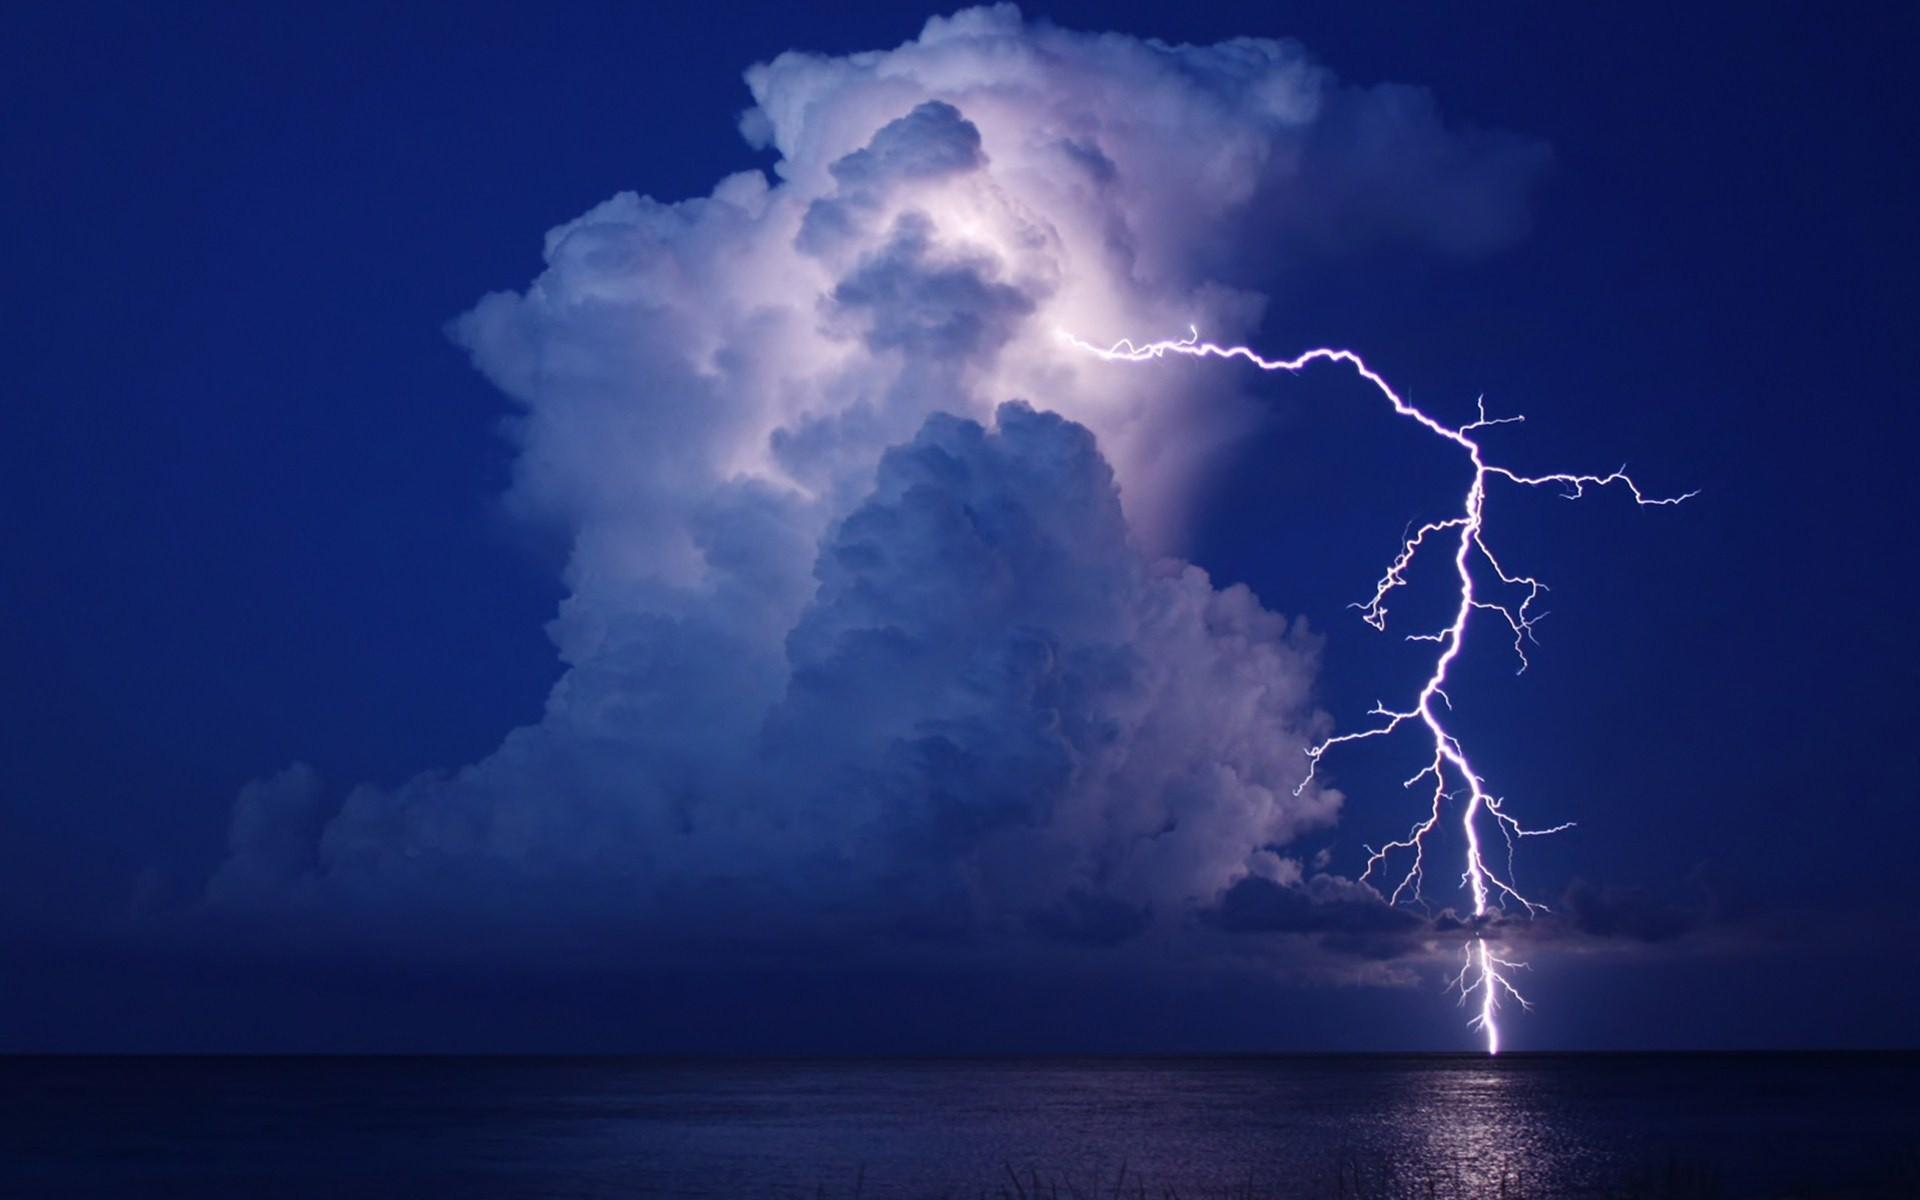 Reflection, Night, Storm, Landscapes,sky,lightning, Cool Image, Sea